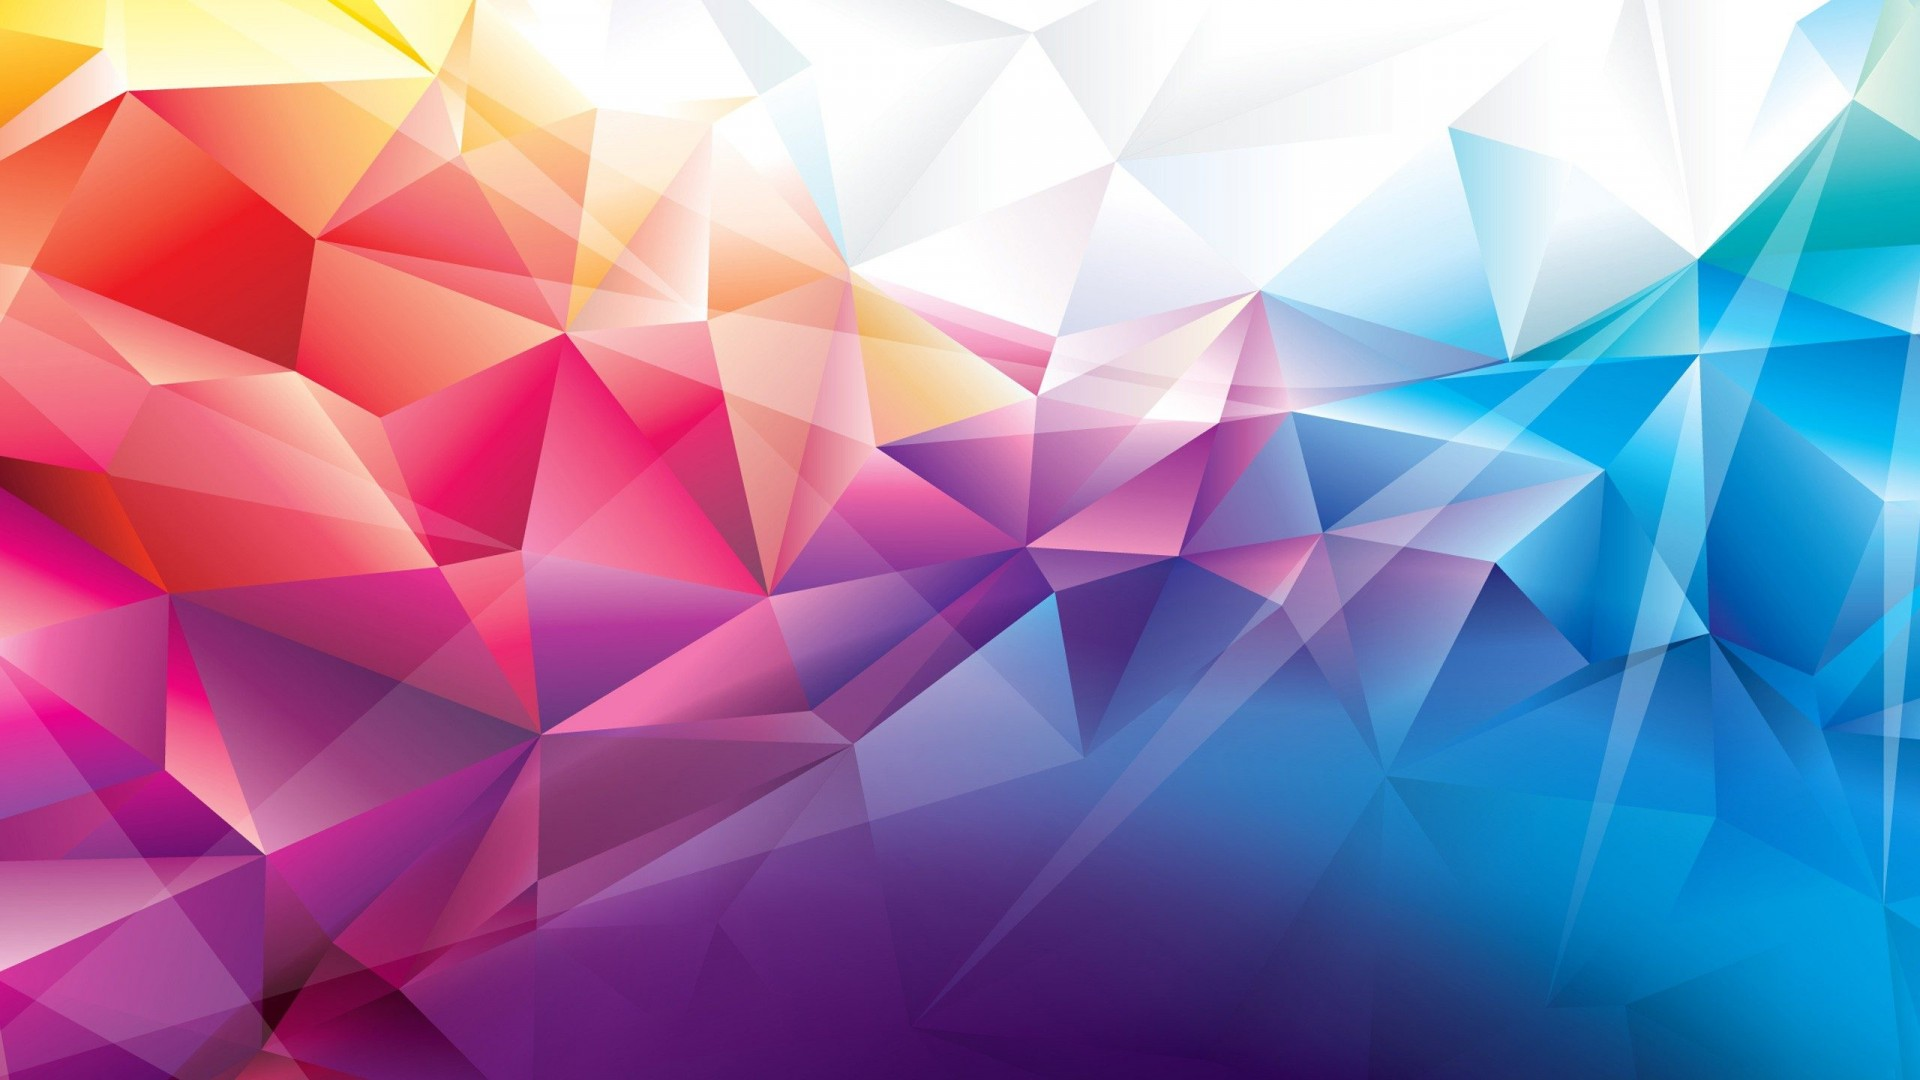 Abstract Backgrounds 1920x1080 Png - Abstract Background HD Wallpaper 14095 - Baltana